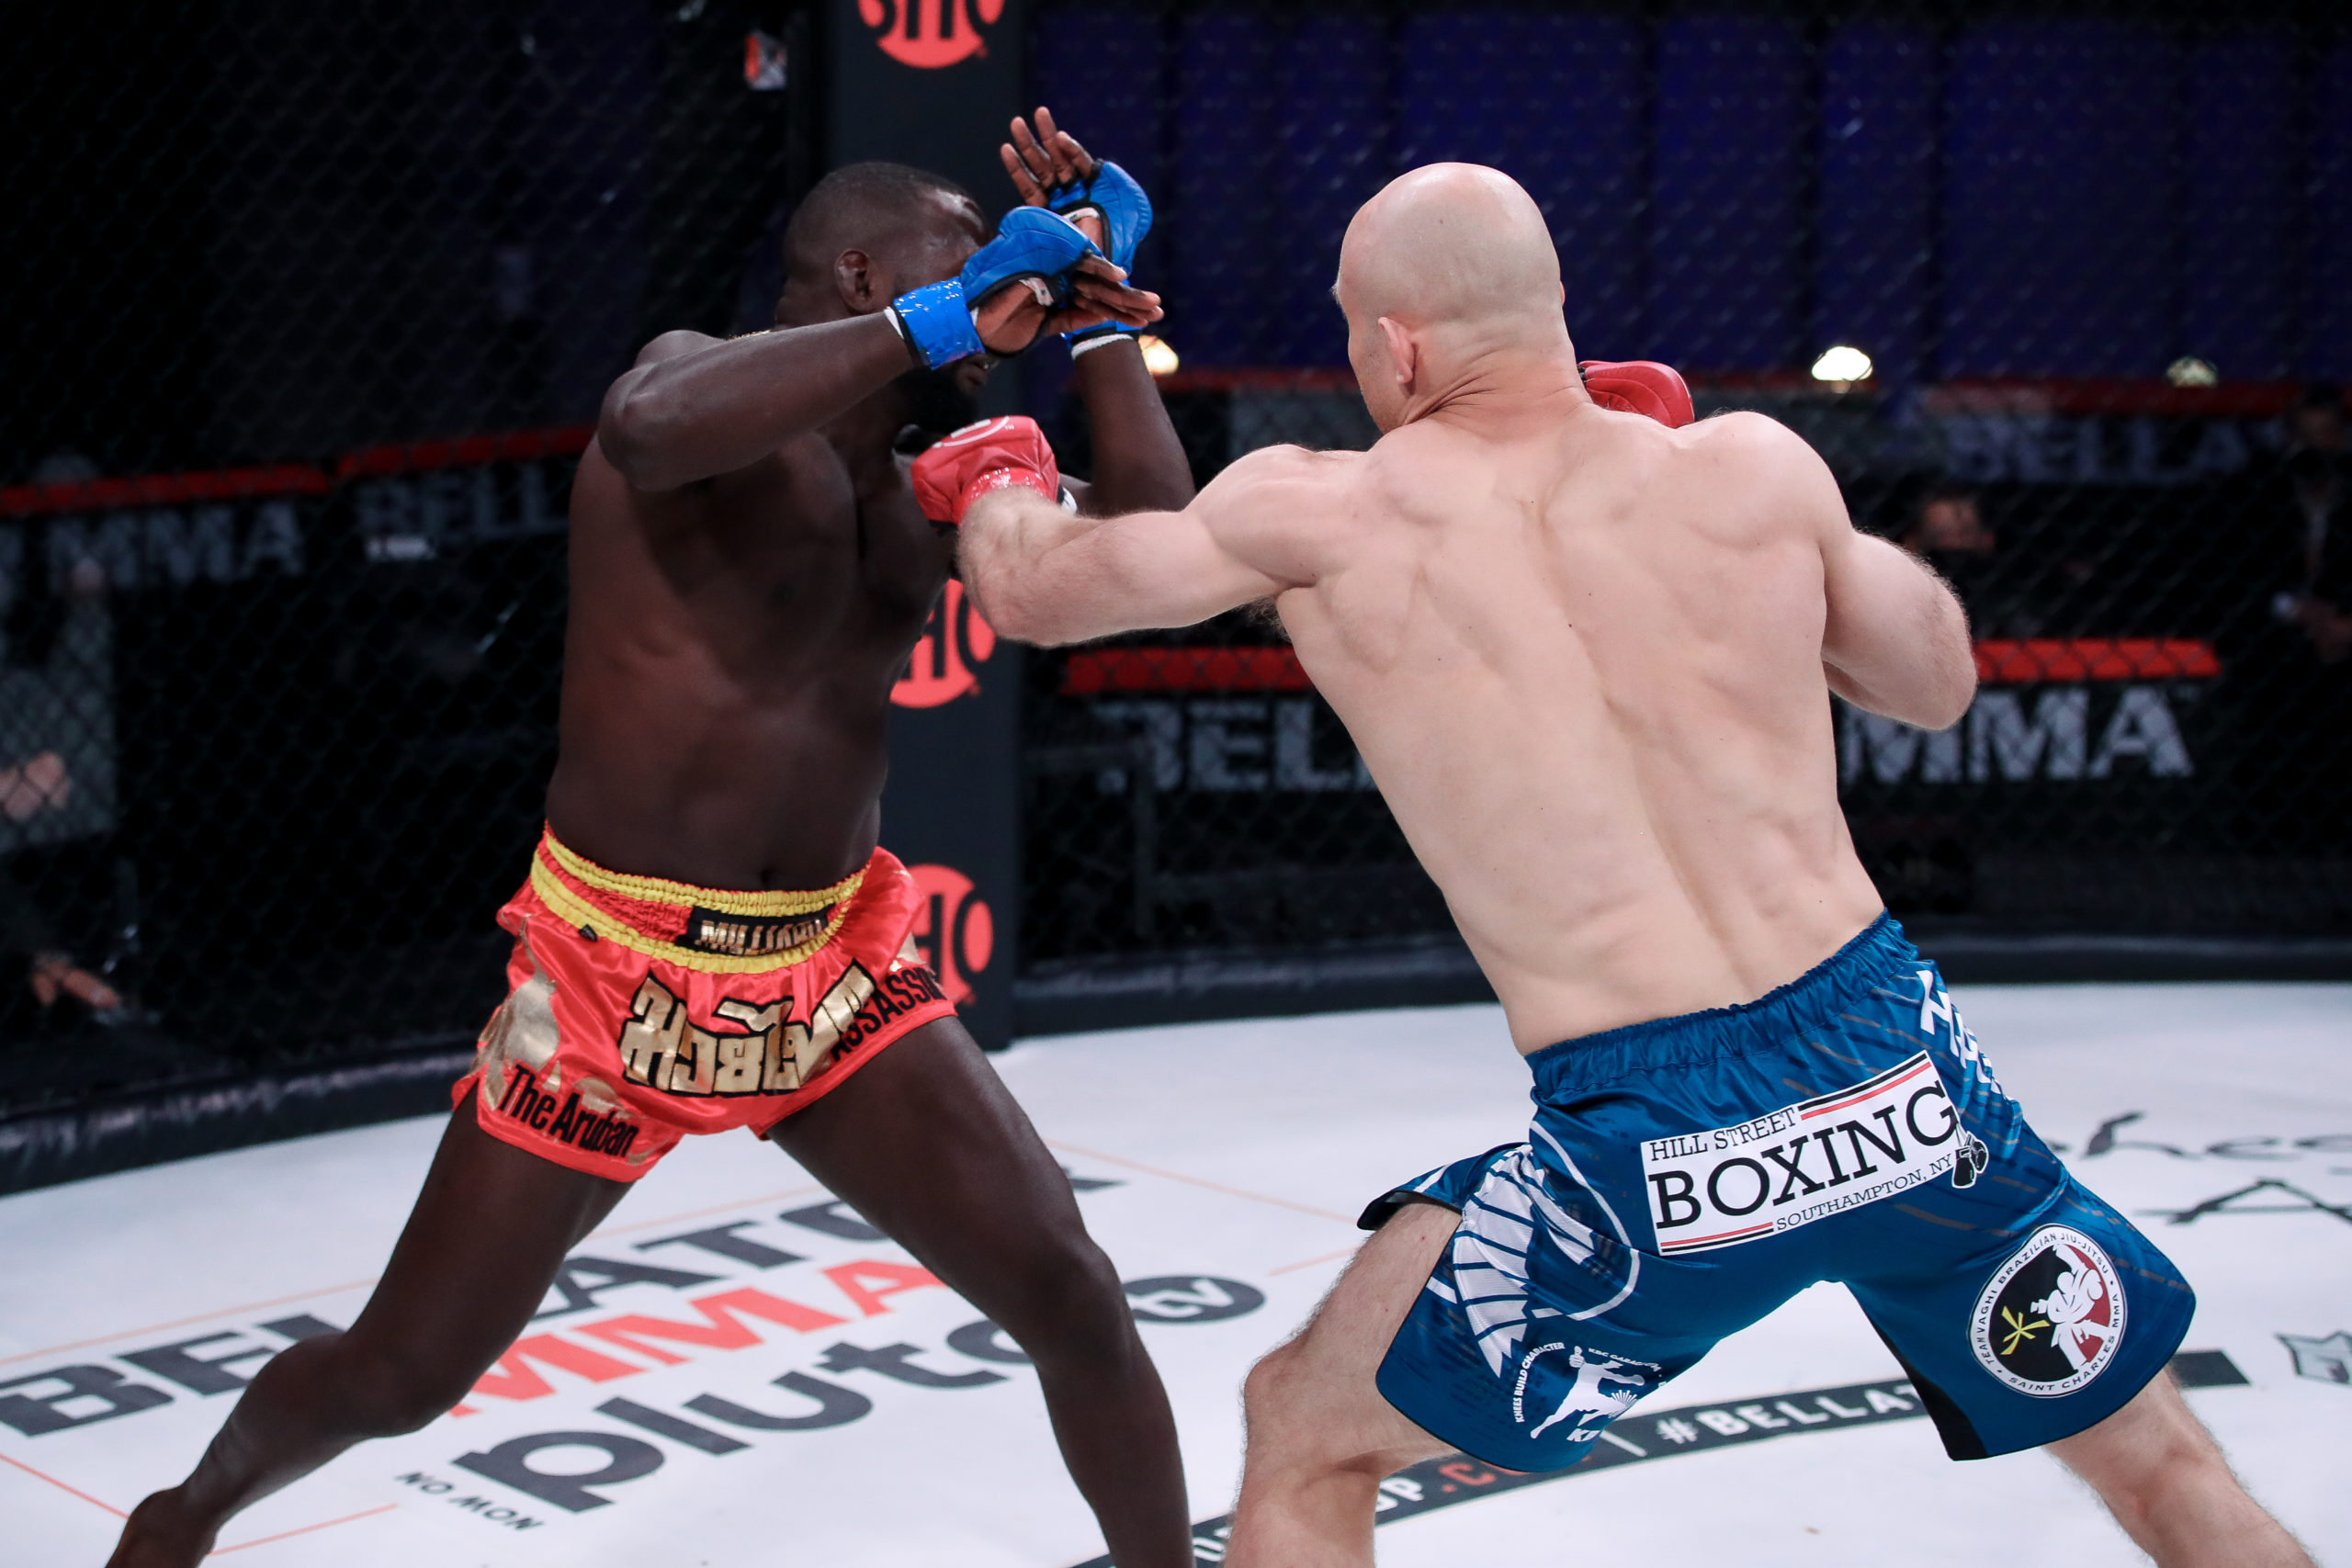 Julius Anglickas gets his armed raised in his most recently victory this past April over Gregory Millard at Bellator 257.